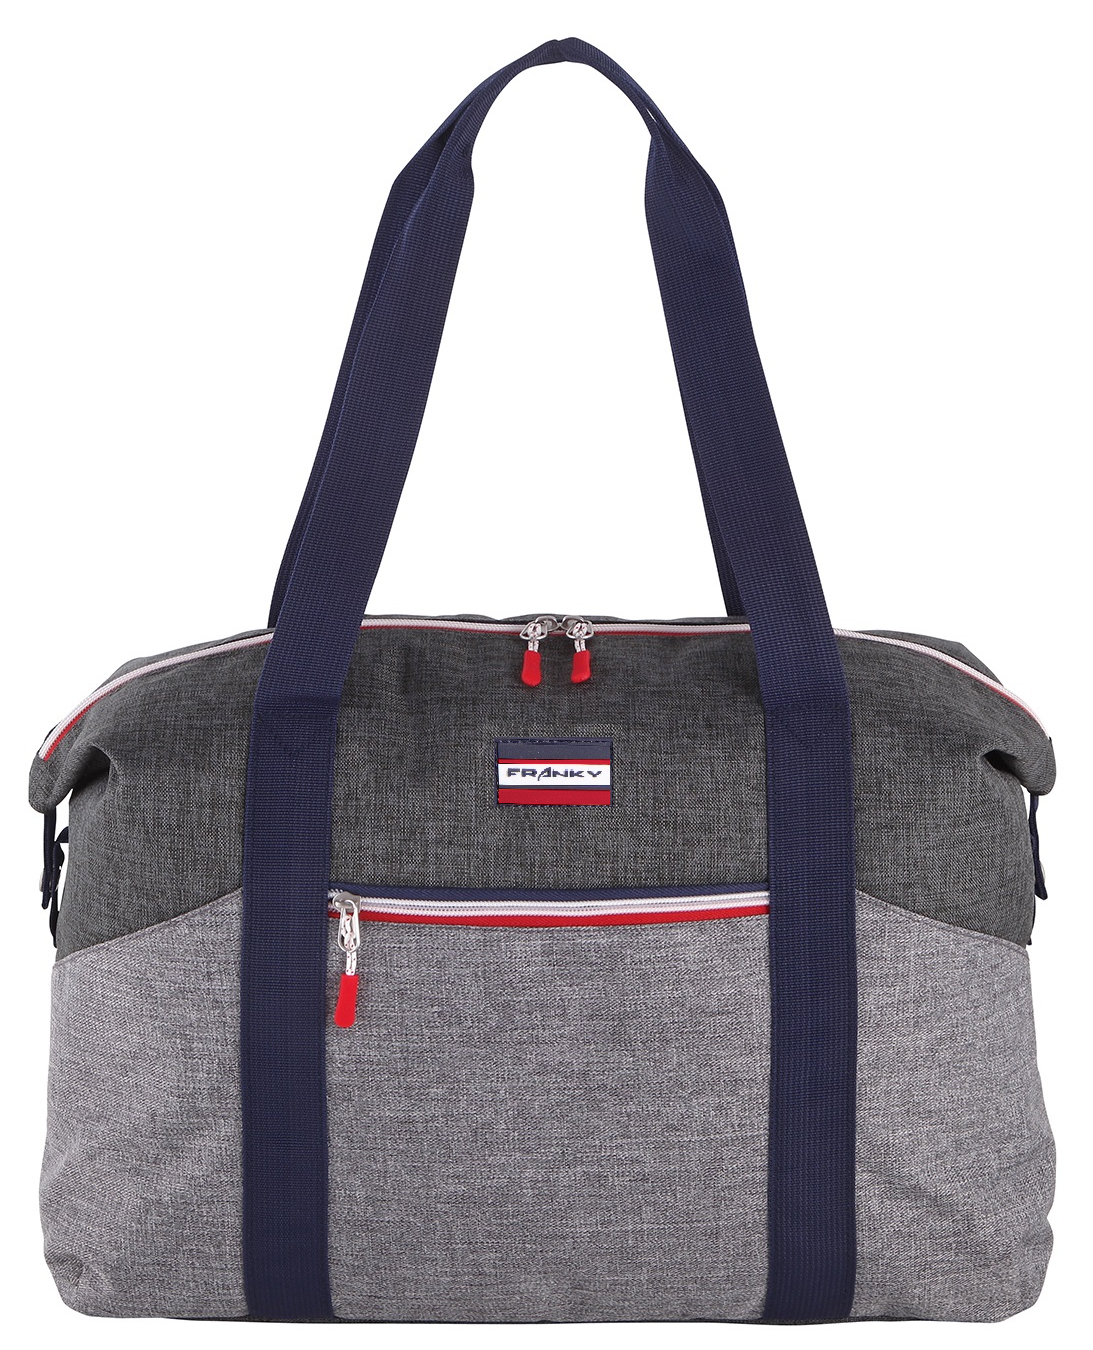 Franky Shopper grey sports